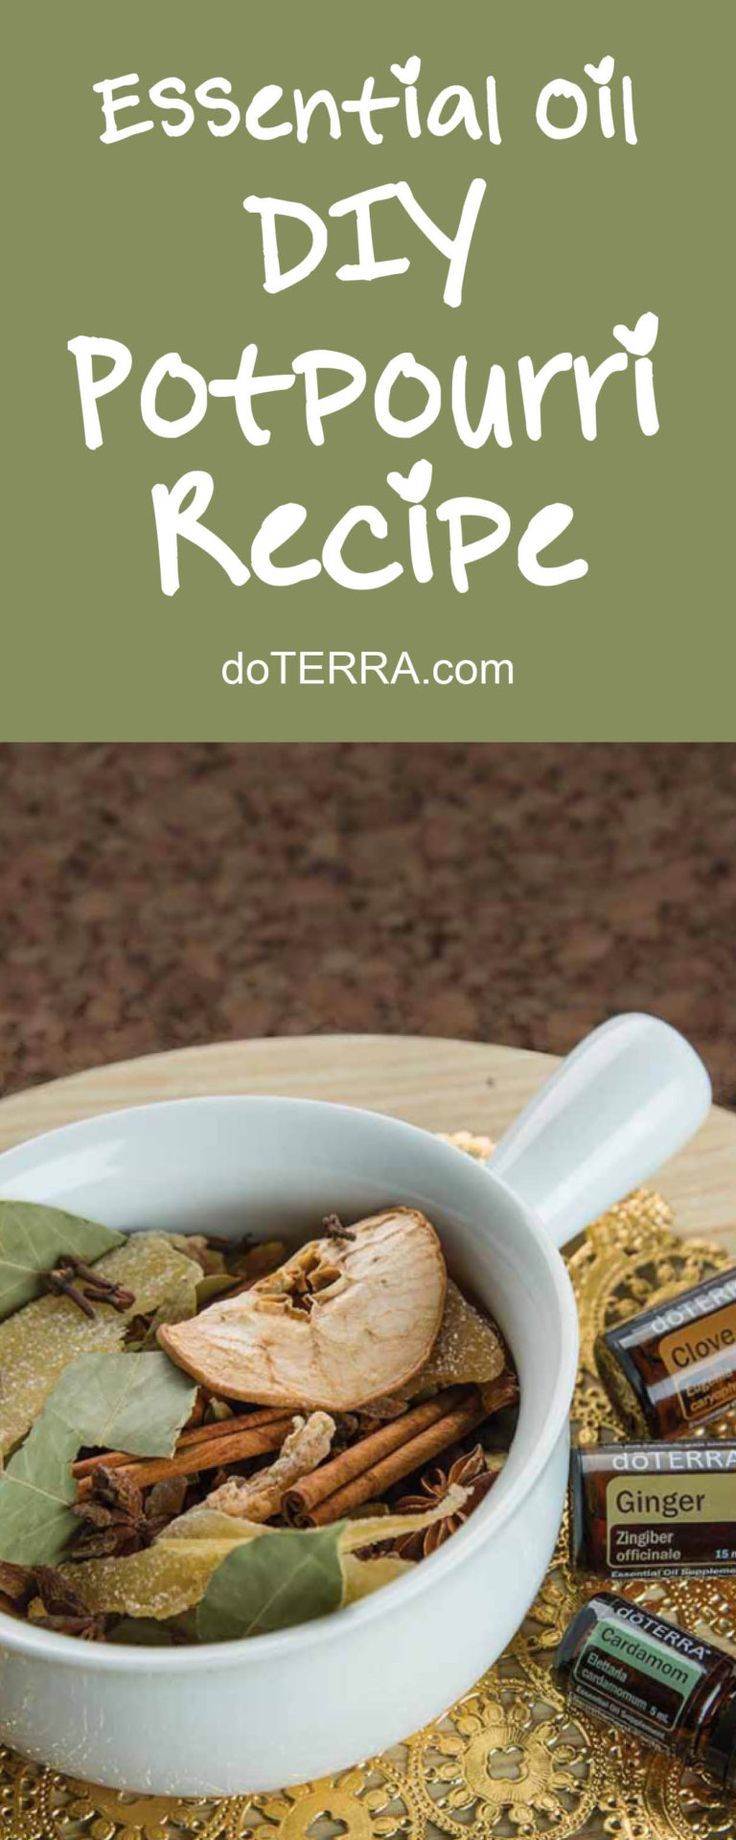 doTERRA Essential Oils DIY Potpourri Recipe